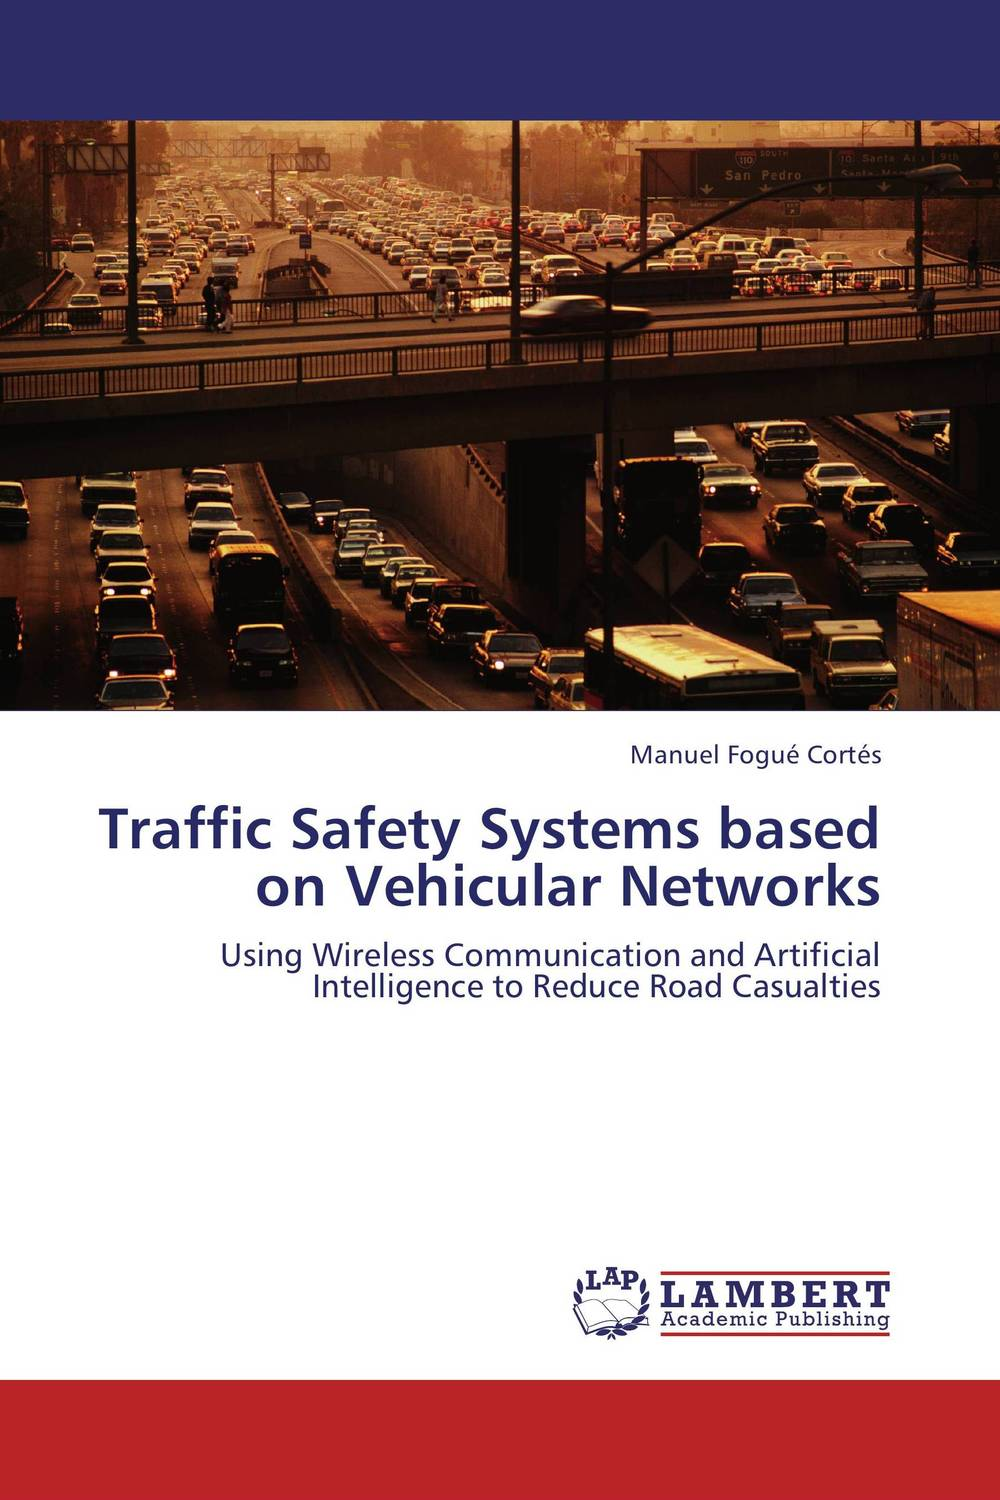 Traffic Safety Systems based on Vehicular Networks ботильоны vagabond 4428 401 20